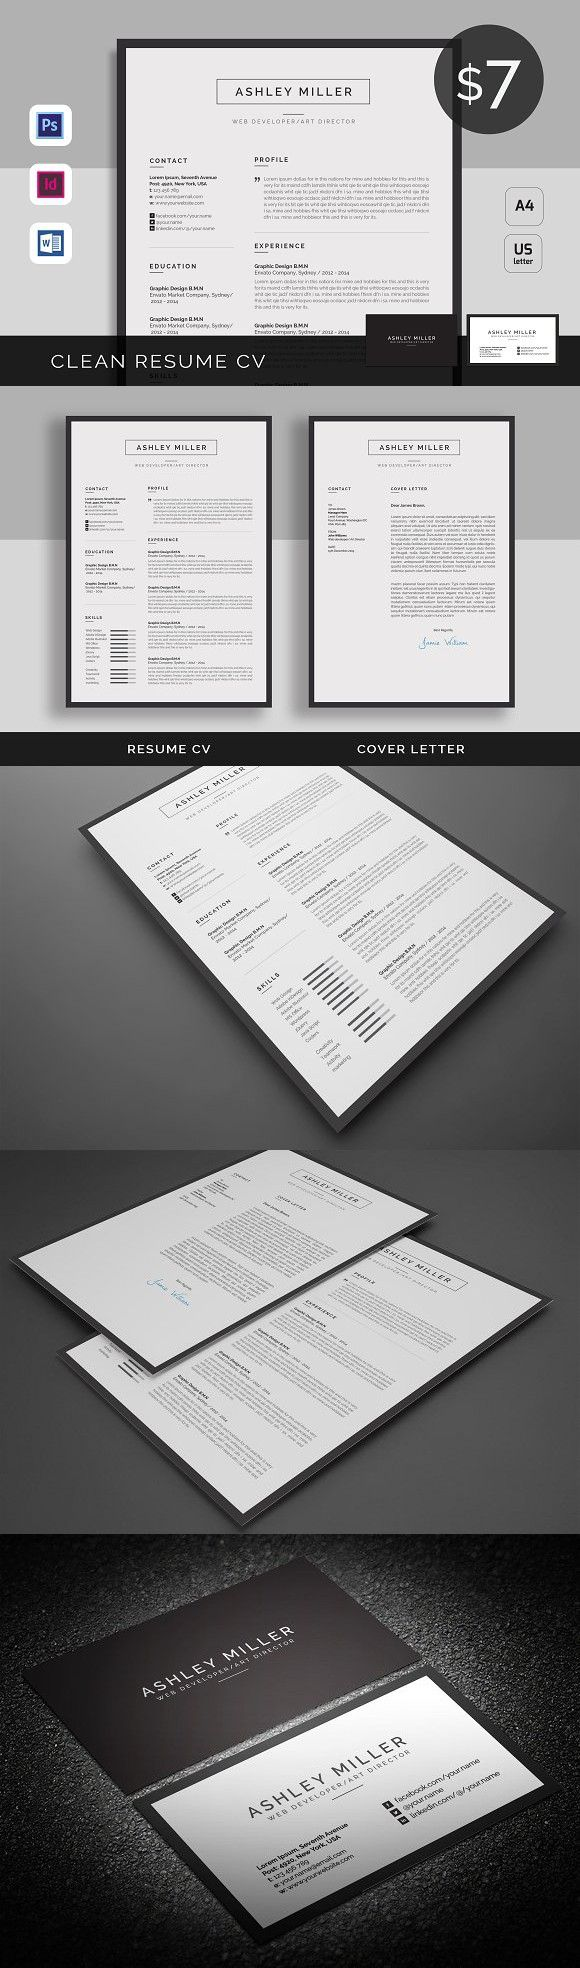 excellent resume formats%0A cover letter sample teaching